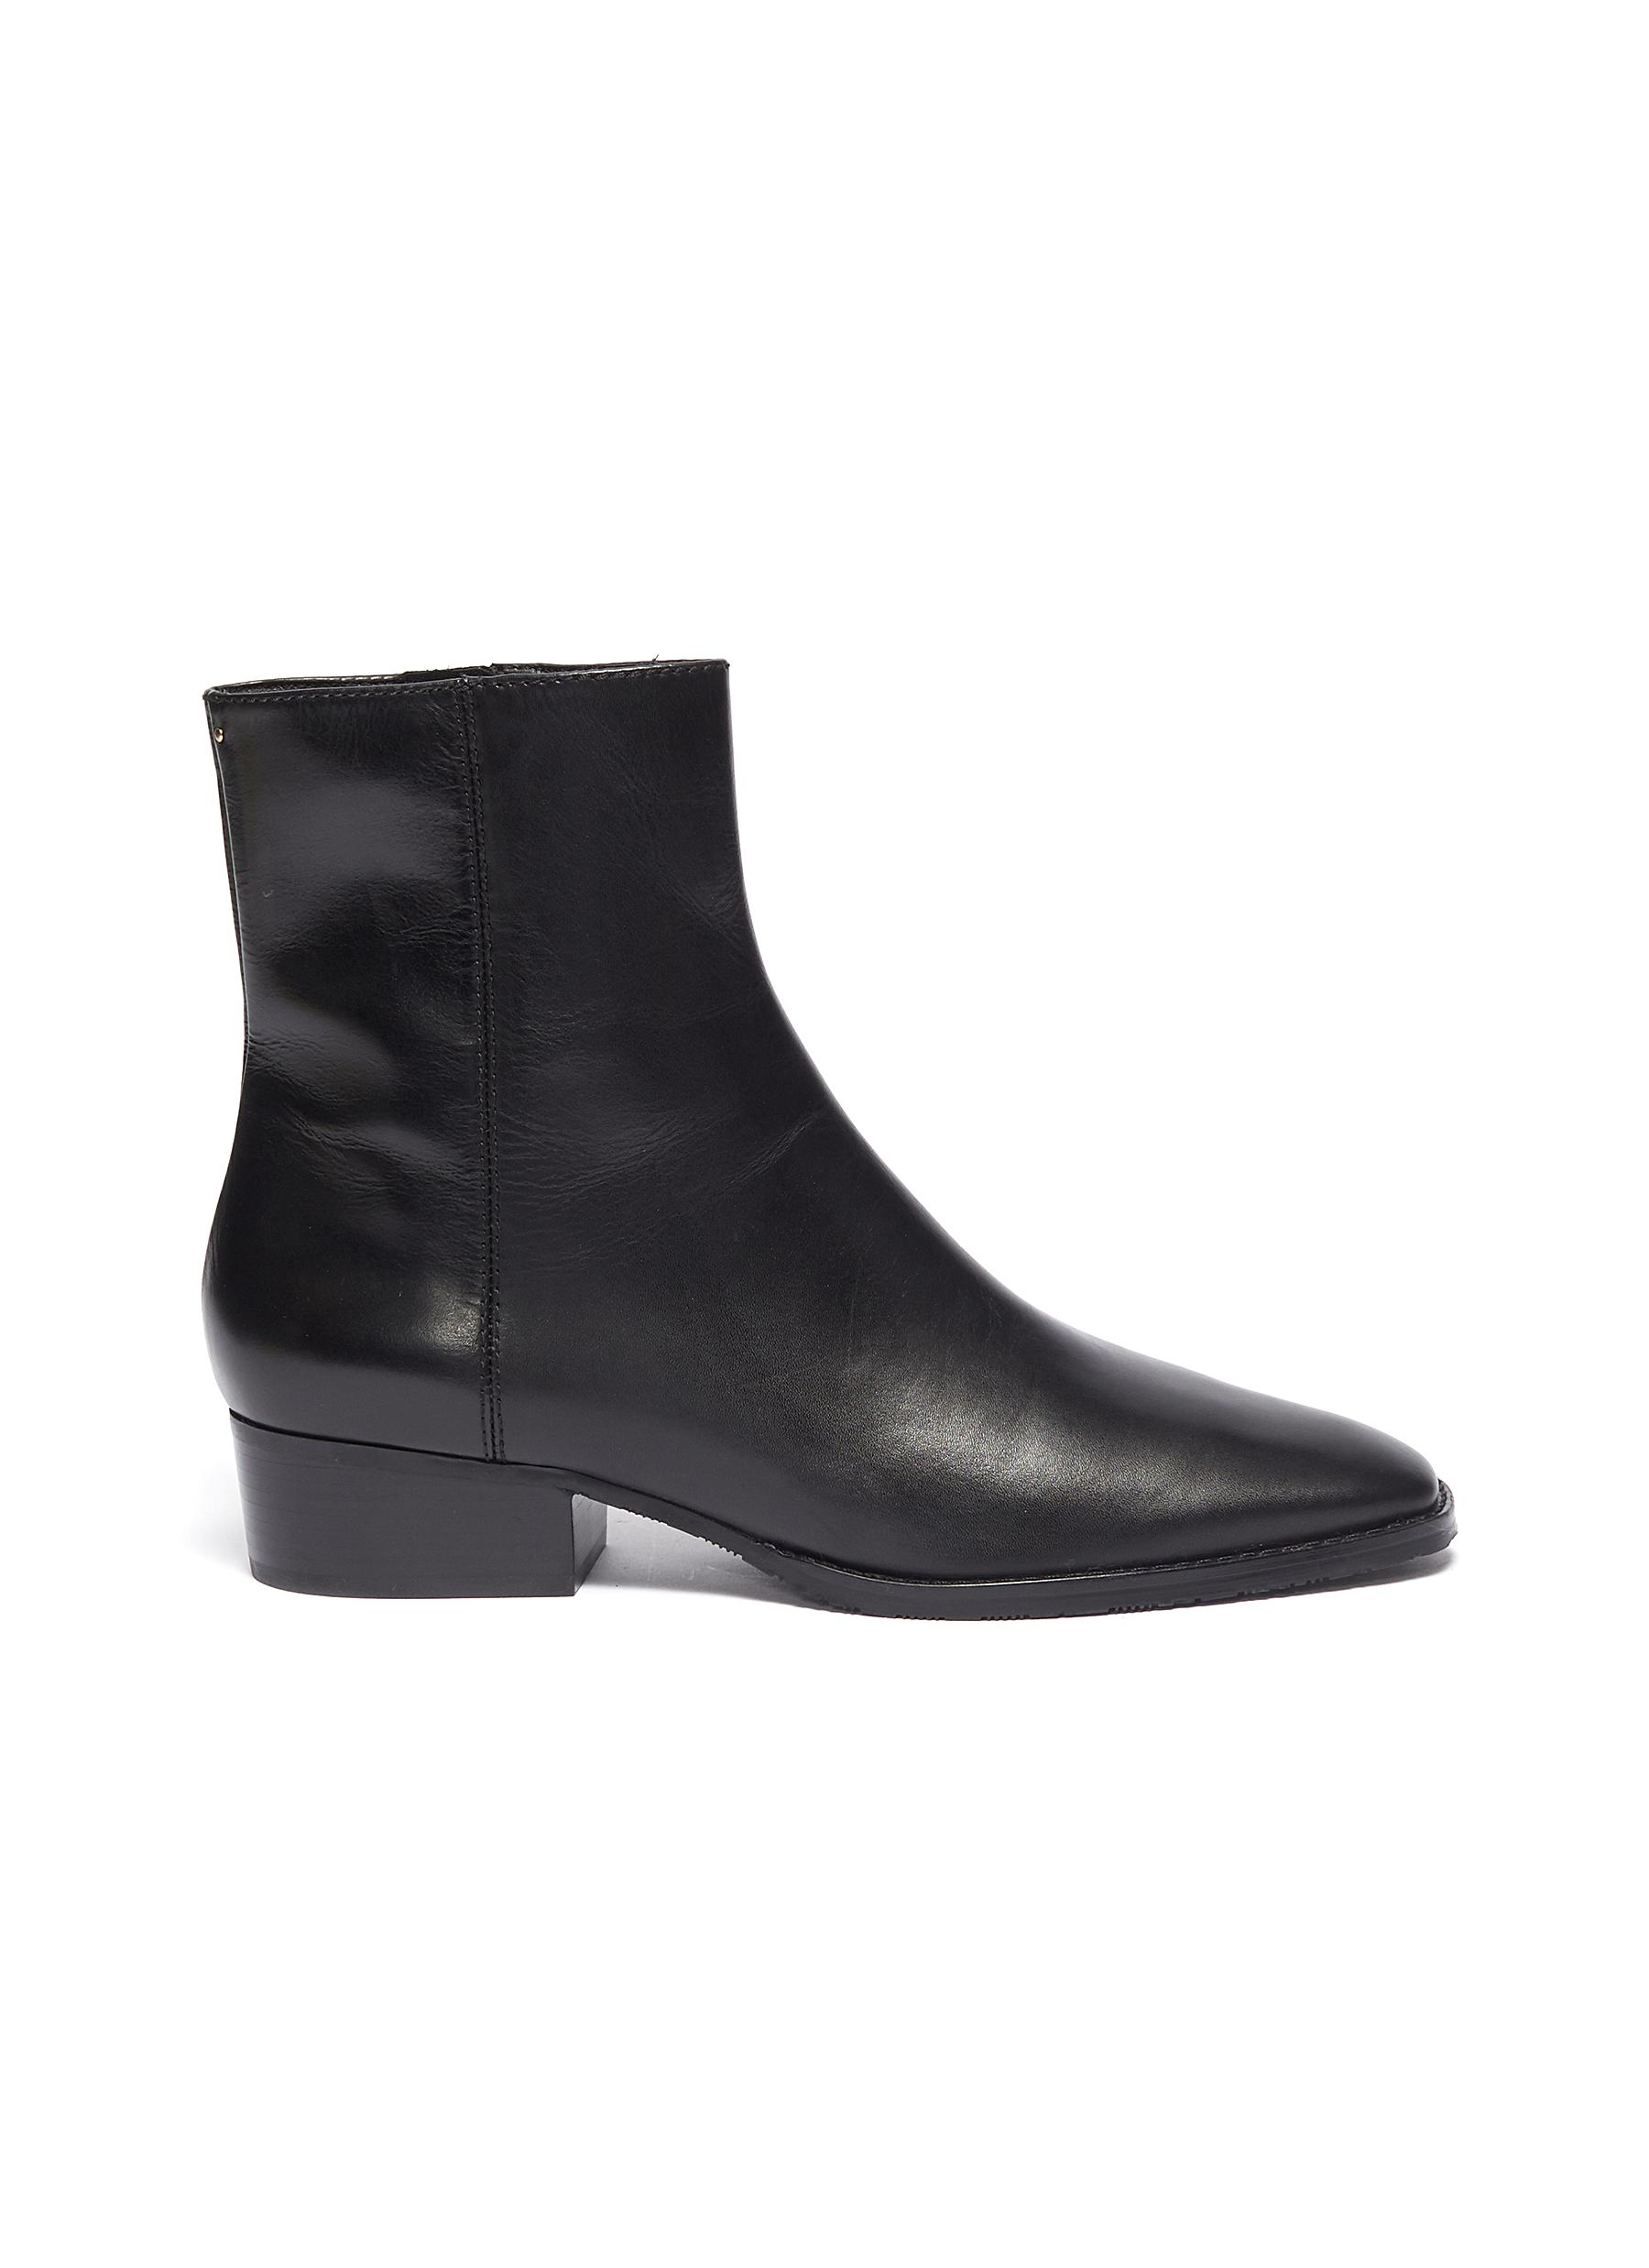 Lenny leather ankle boots by Stella Luna